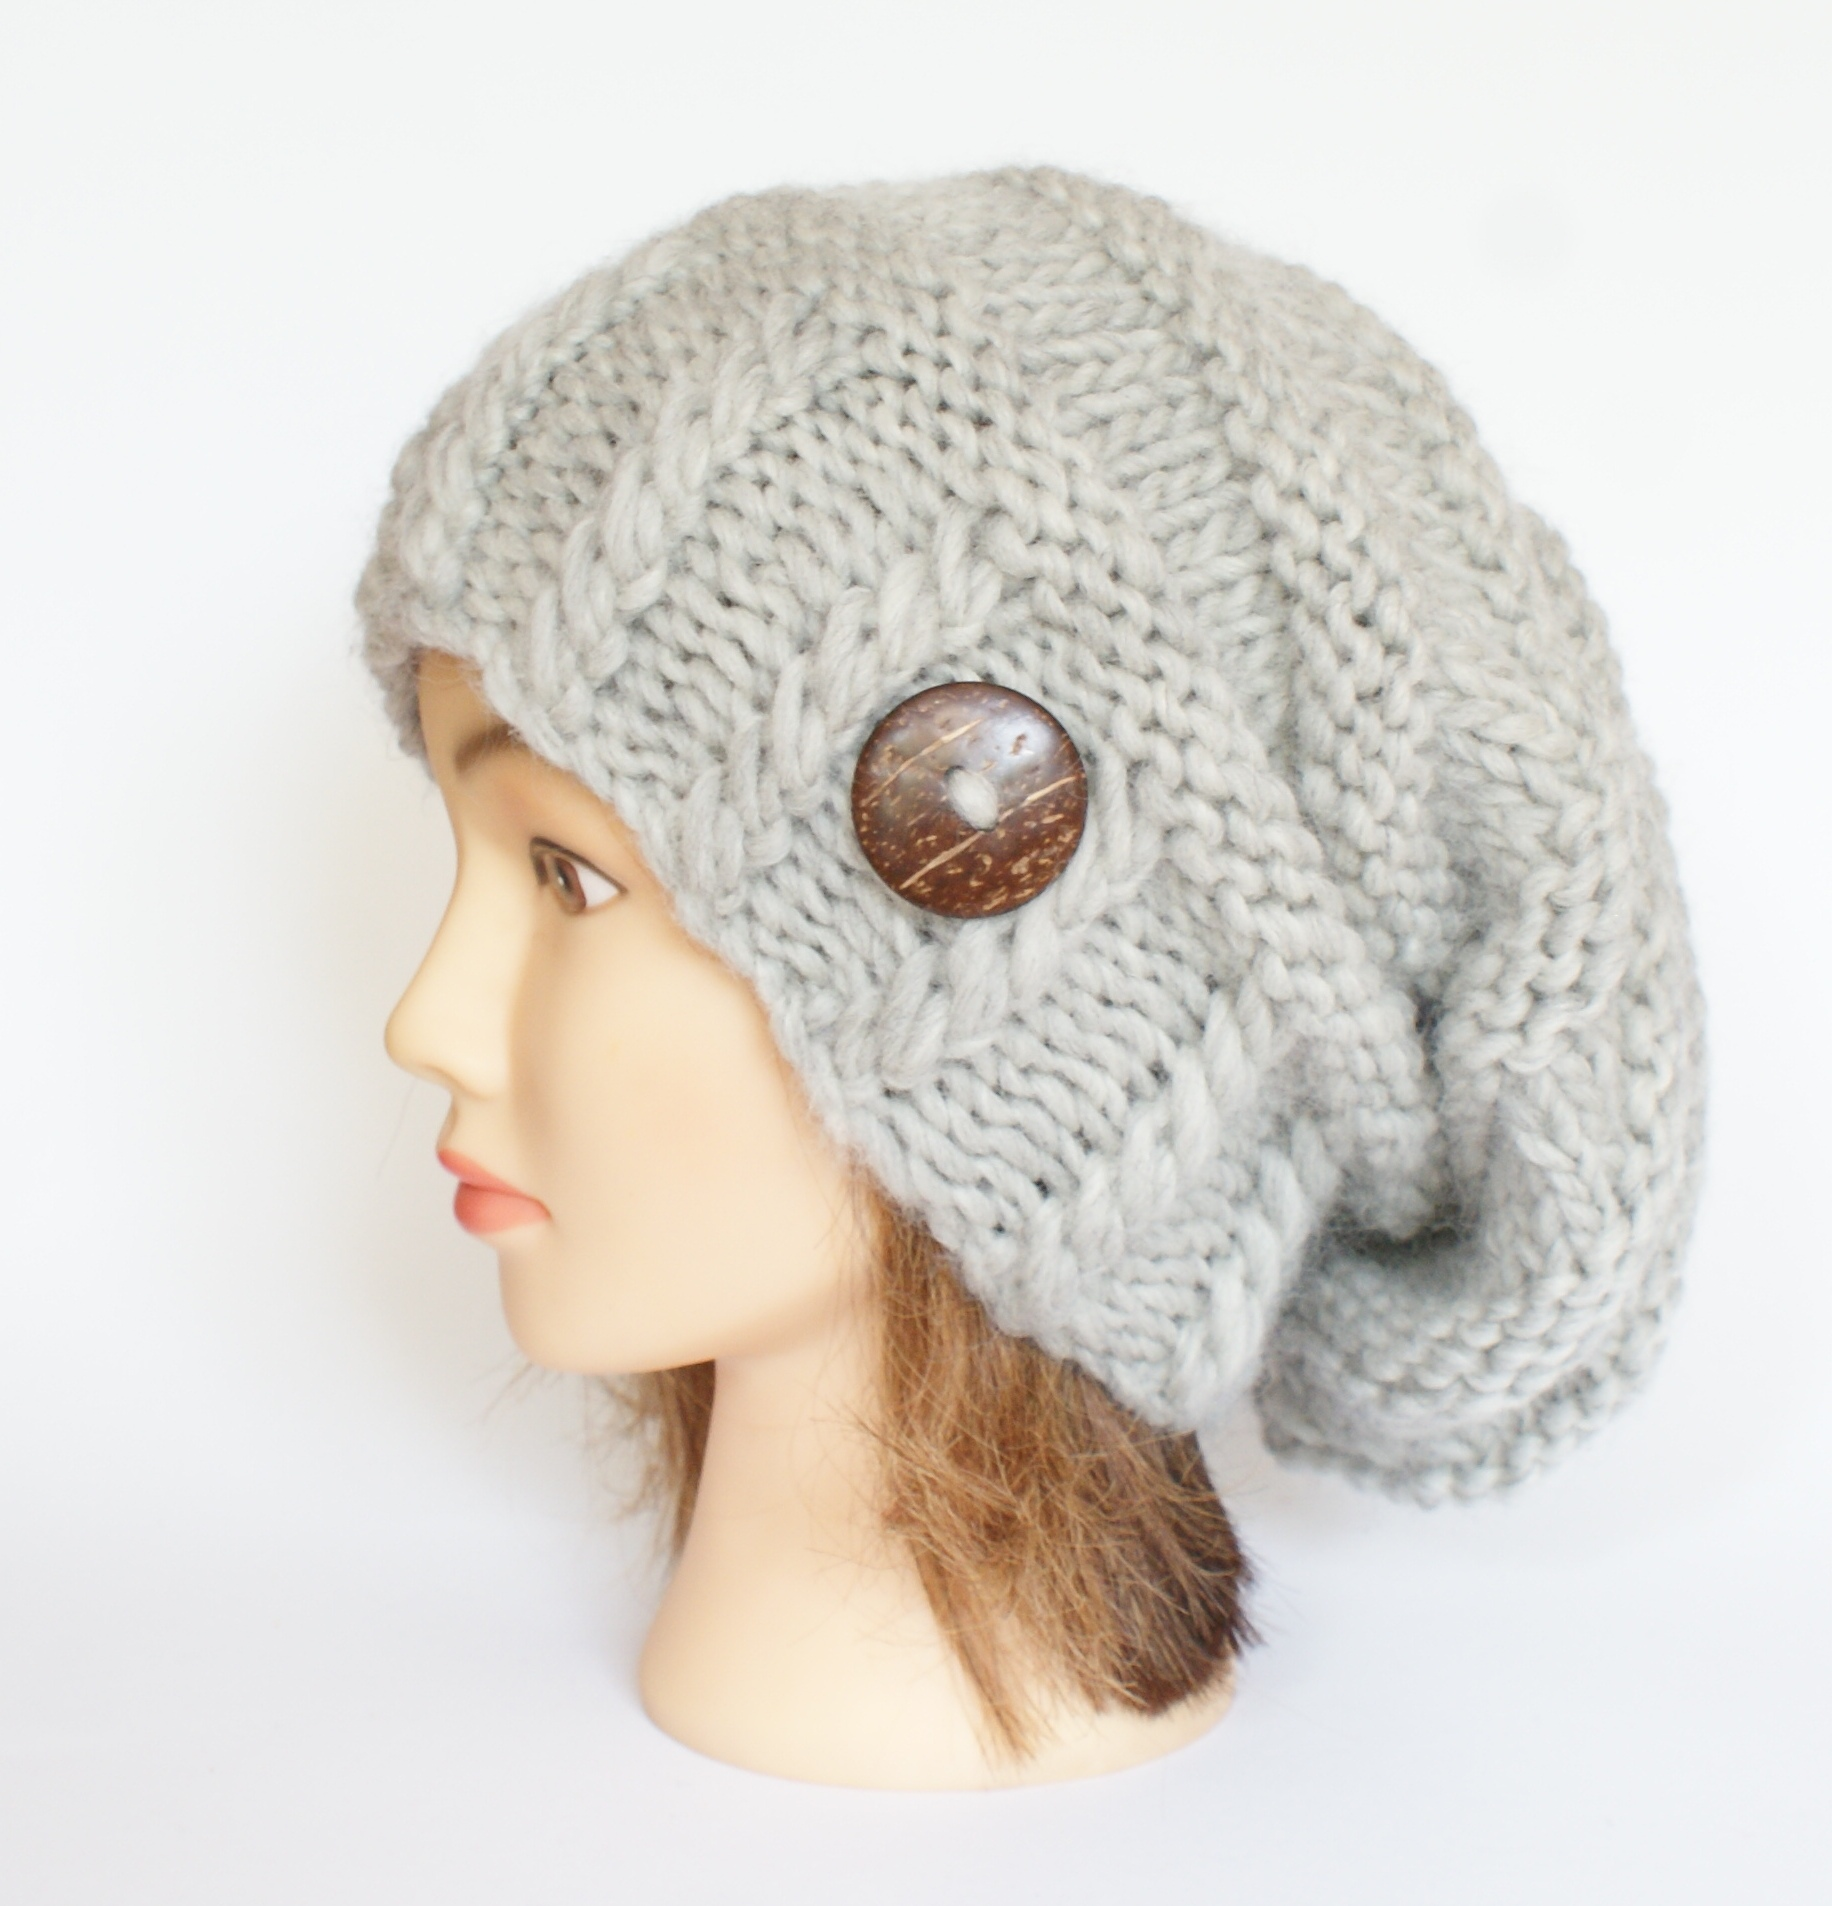 91ee8113b Irish handknit light gray slouchy beanie hat for women - womens slouch hat  with button - gray wool hat - warm winter grey hat